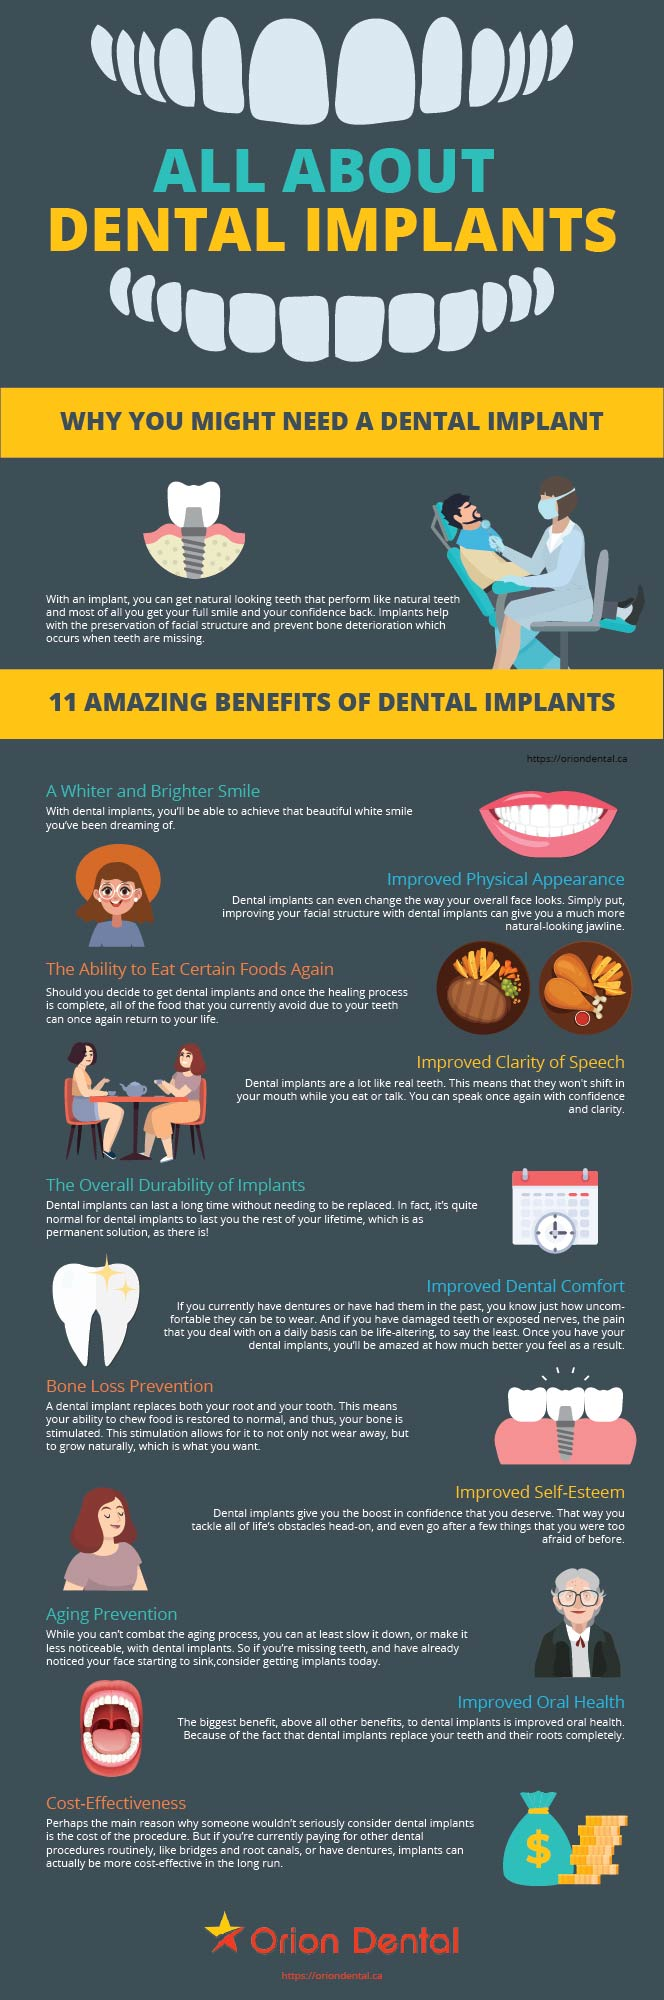 Dental Implants Infographic | Orion Dental